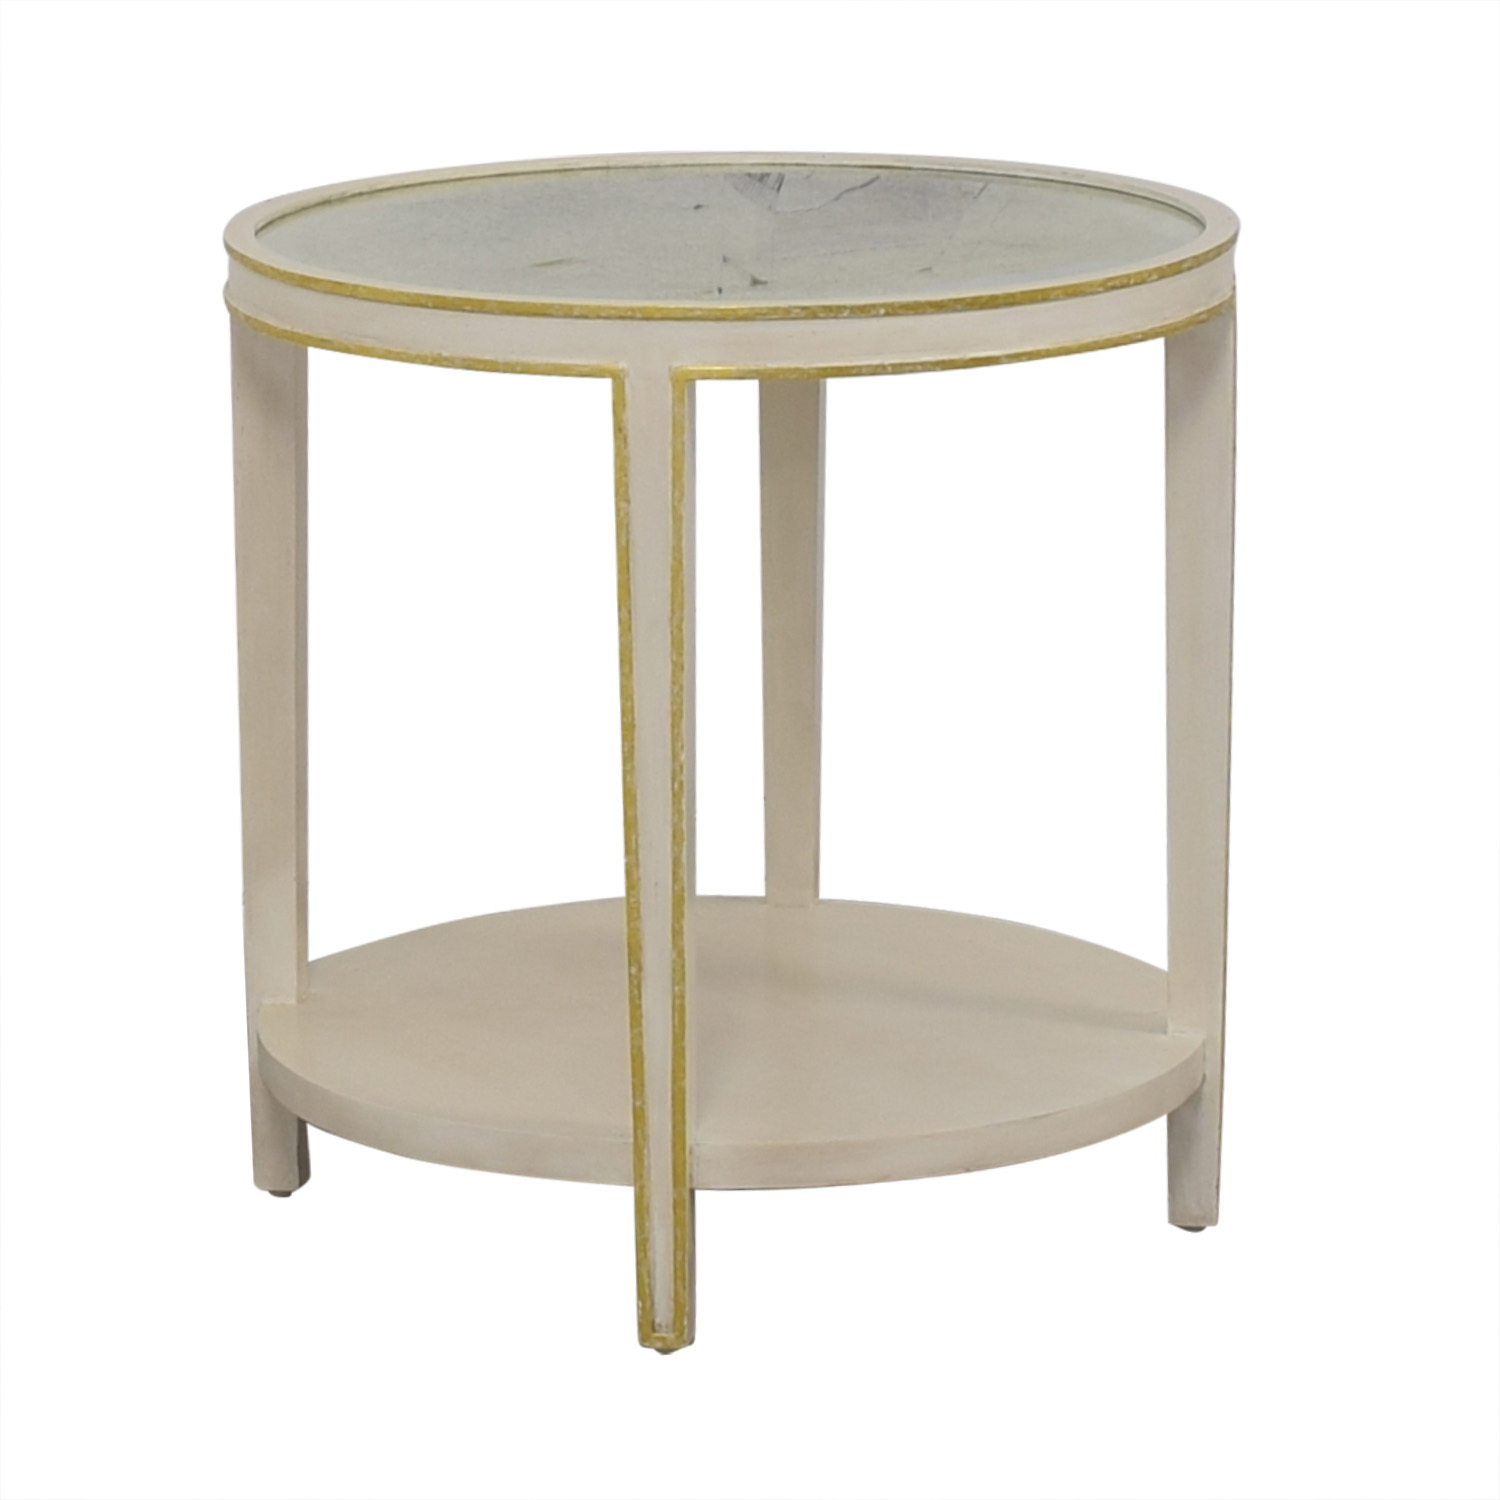 86 Off Oly Studio Oly Studio Christine Tall Round Side Table In Antiqued White Tables